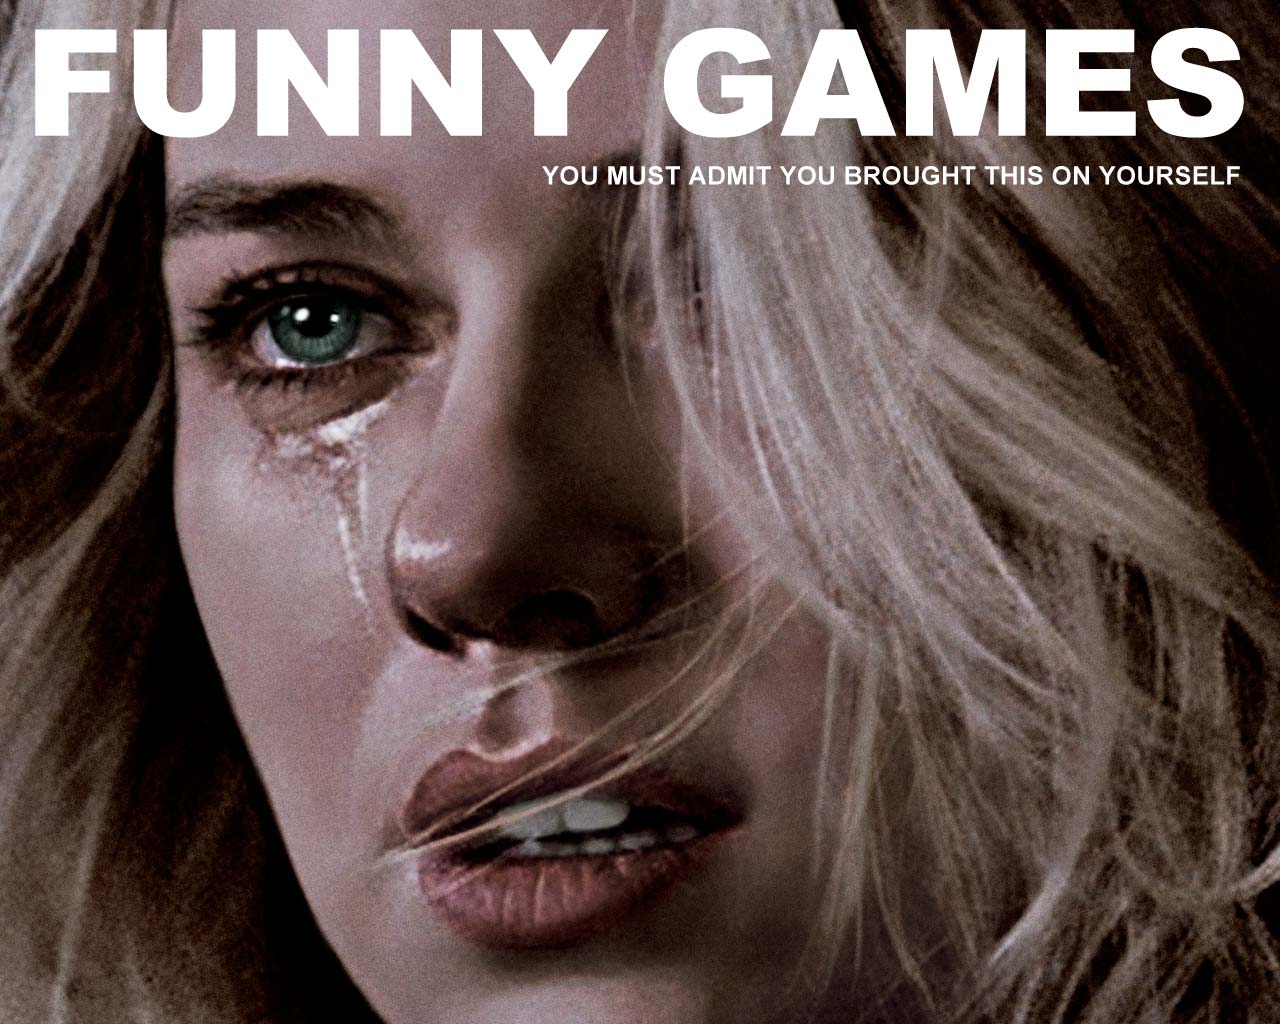 Funny games funny games